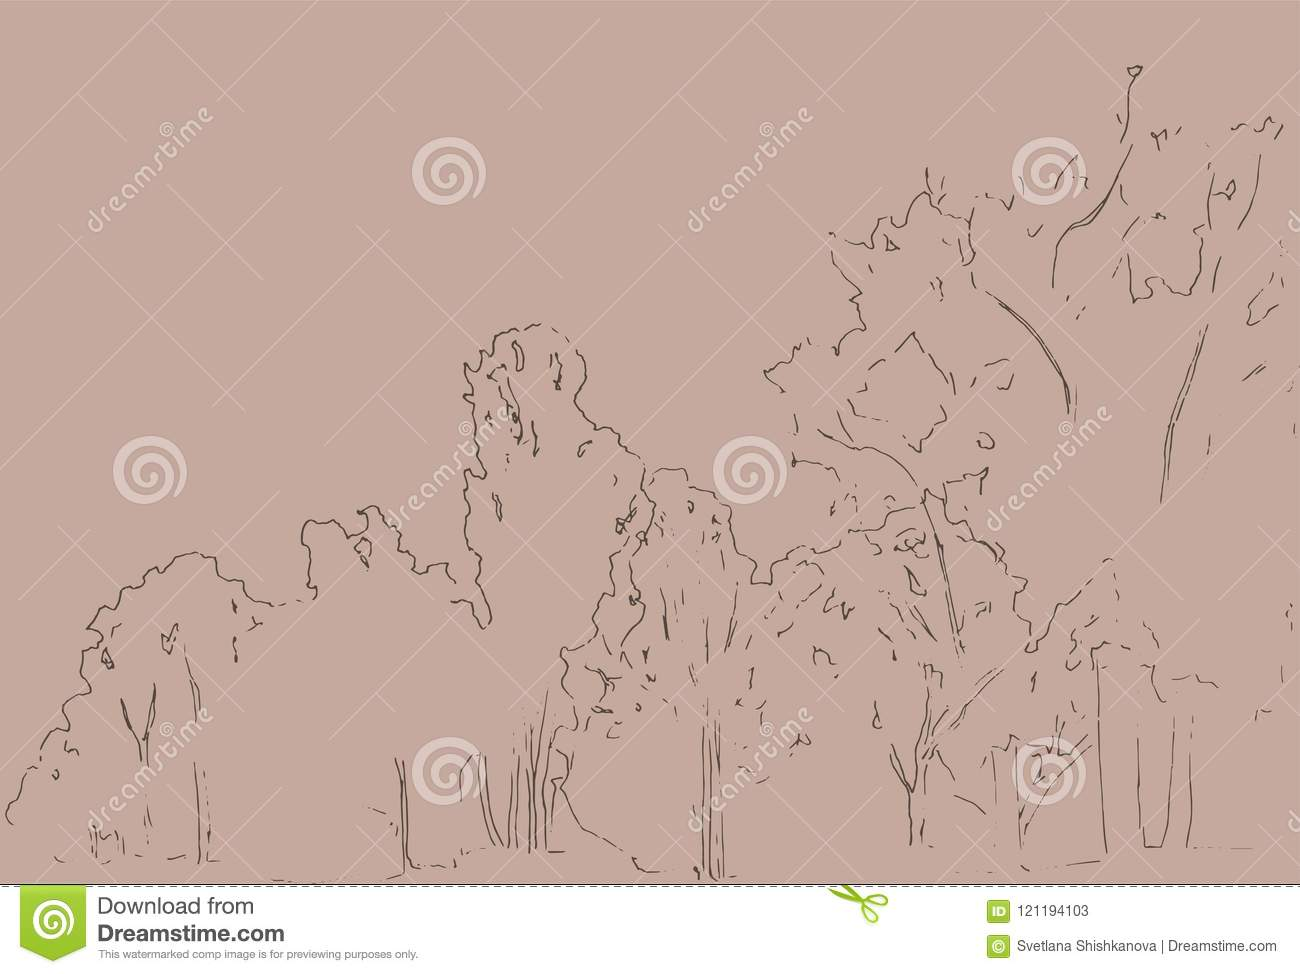 Trees and bushes sketch. Landscape linear drawing. Hand drawn illustration. Forest on white background. Black Line style design.